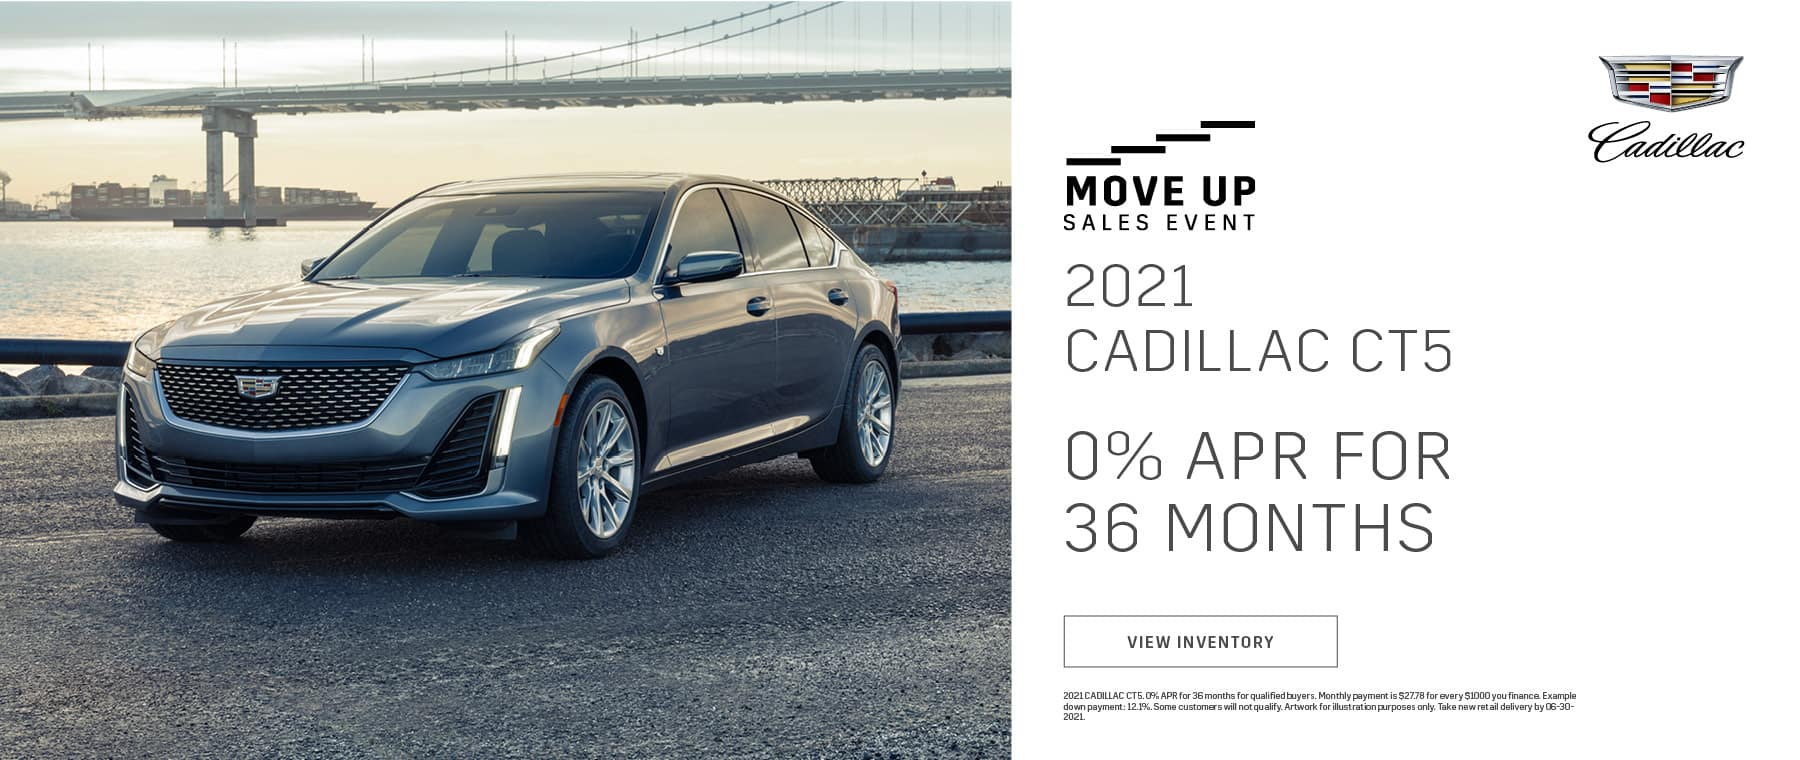 2021 Cadillac CT5 - Move Up Sales Event - Bert Ogden Cadillac in Mission, Texas